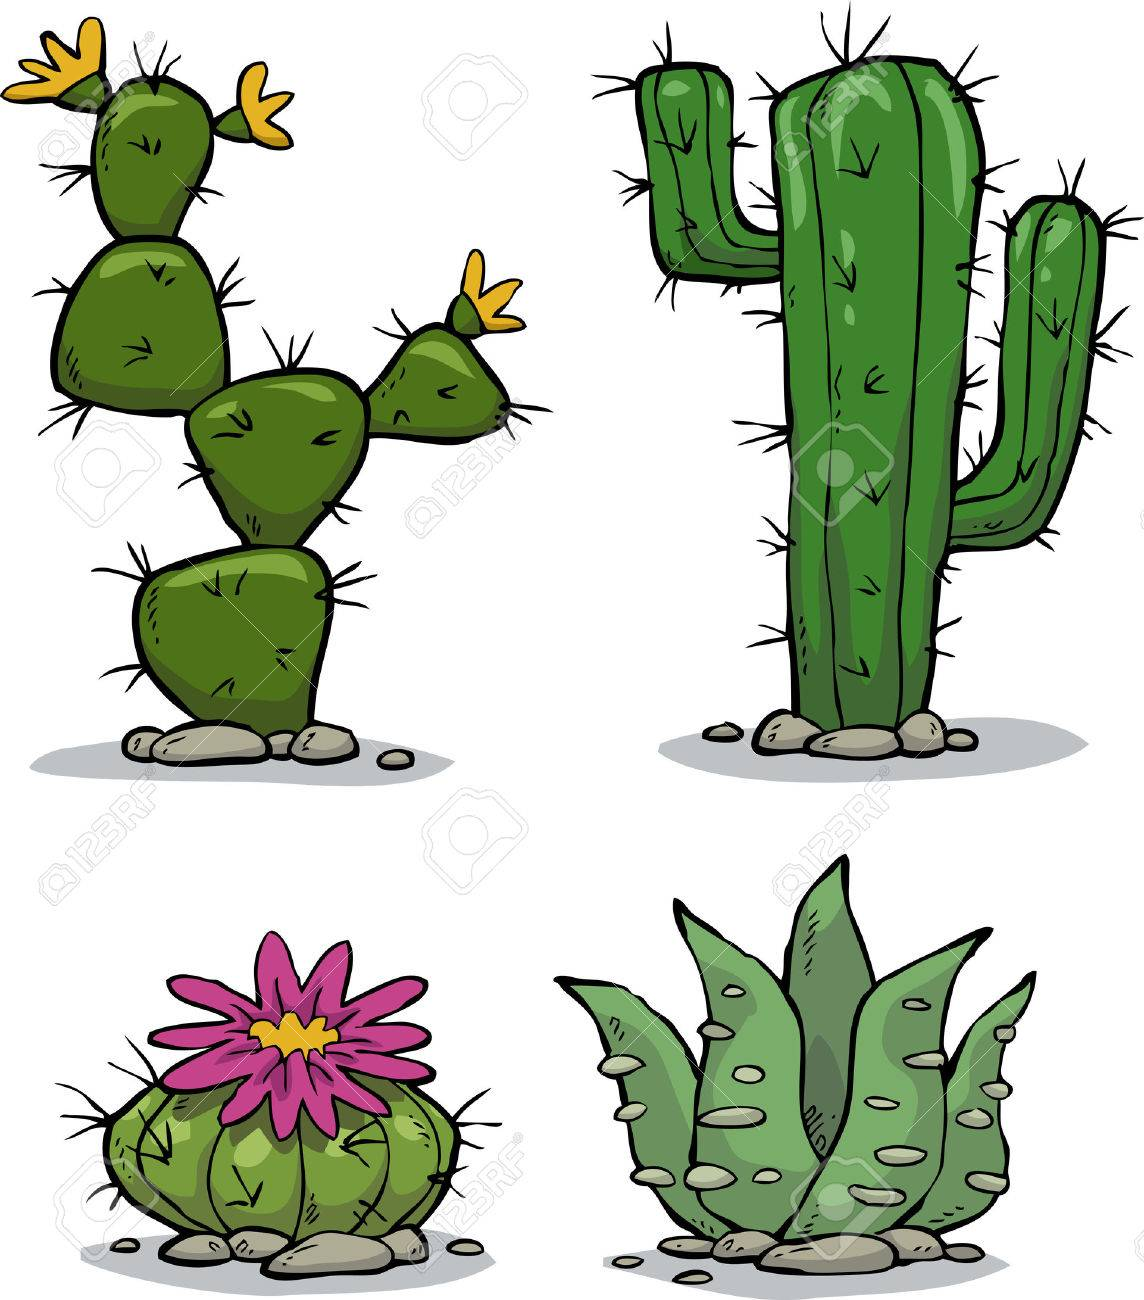 Cactus collection on a white background vector illustration - 47624941